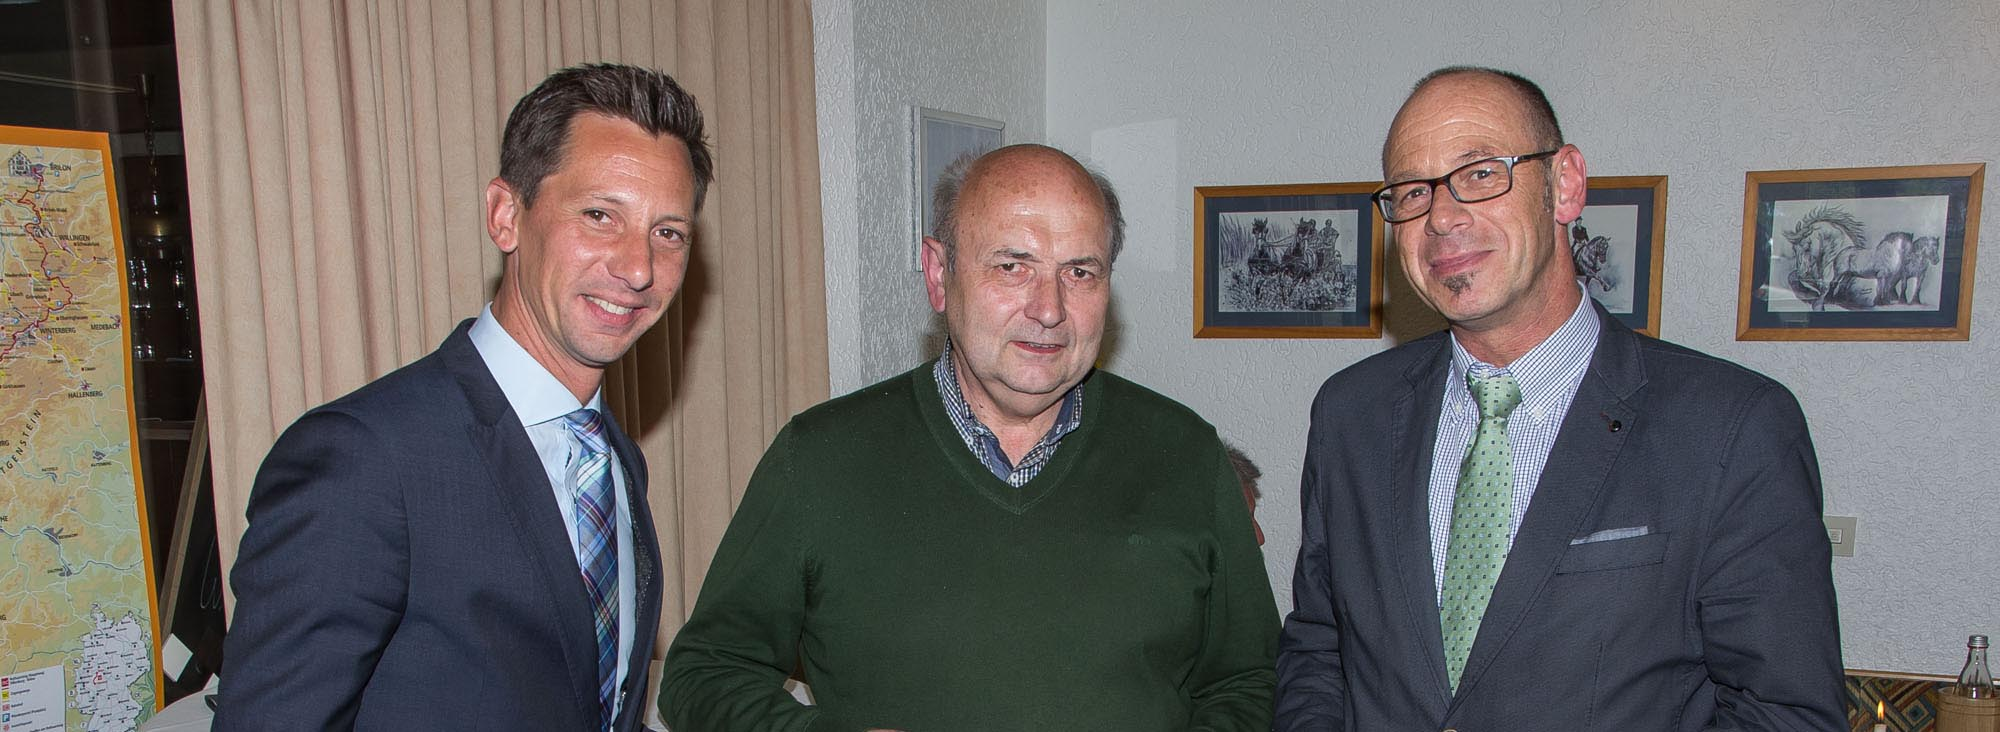 Landrat Andreas Müller, Peter Fasel und Arno Wied, Foto Michael Frede